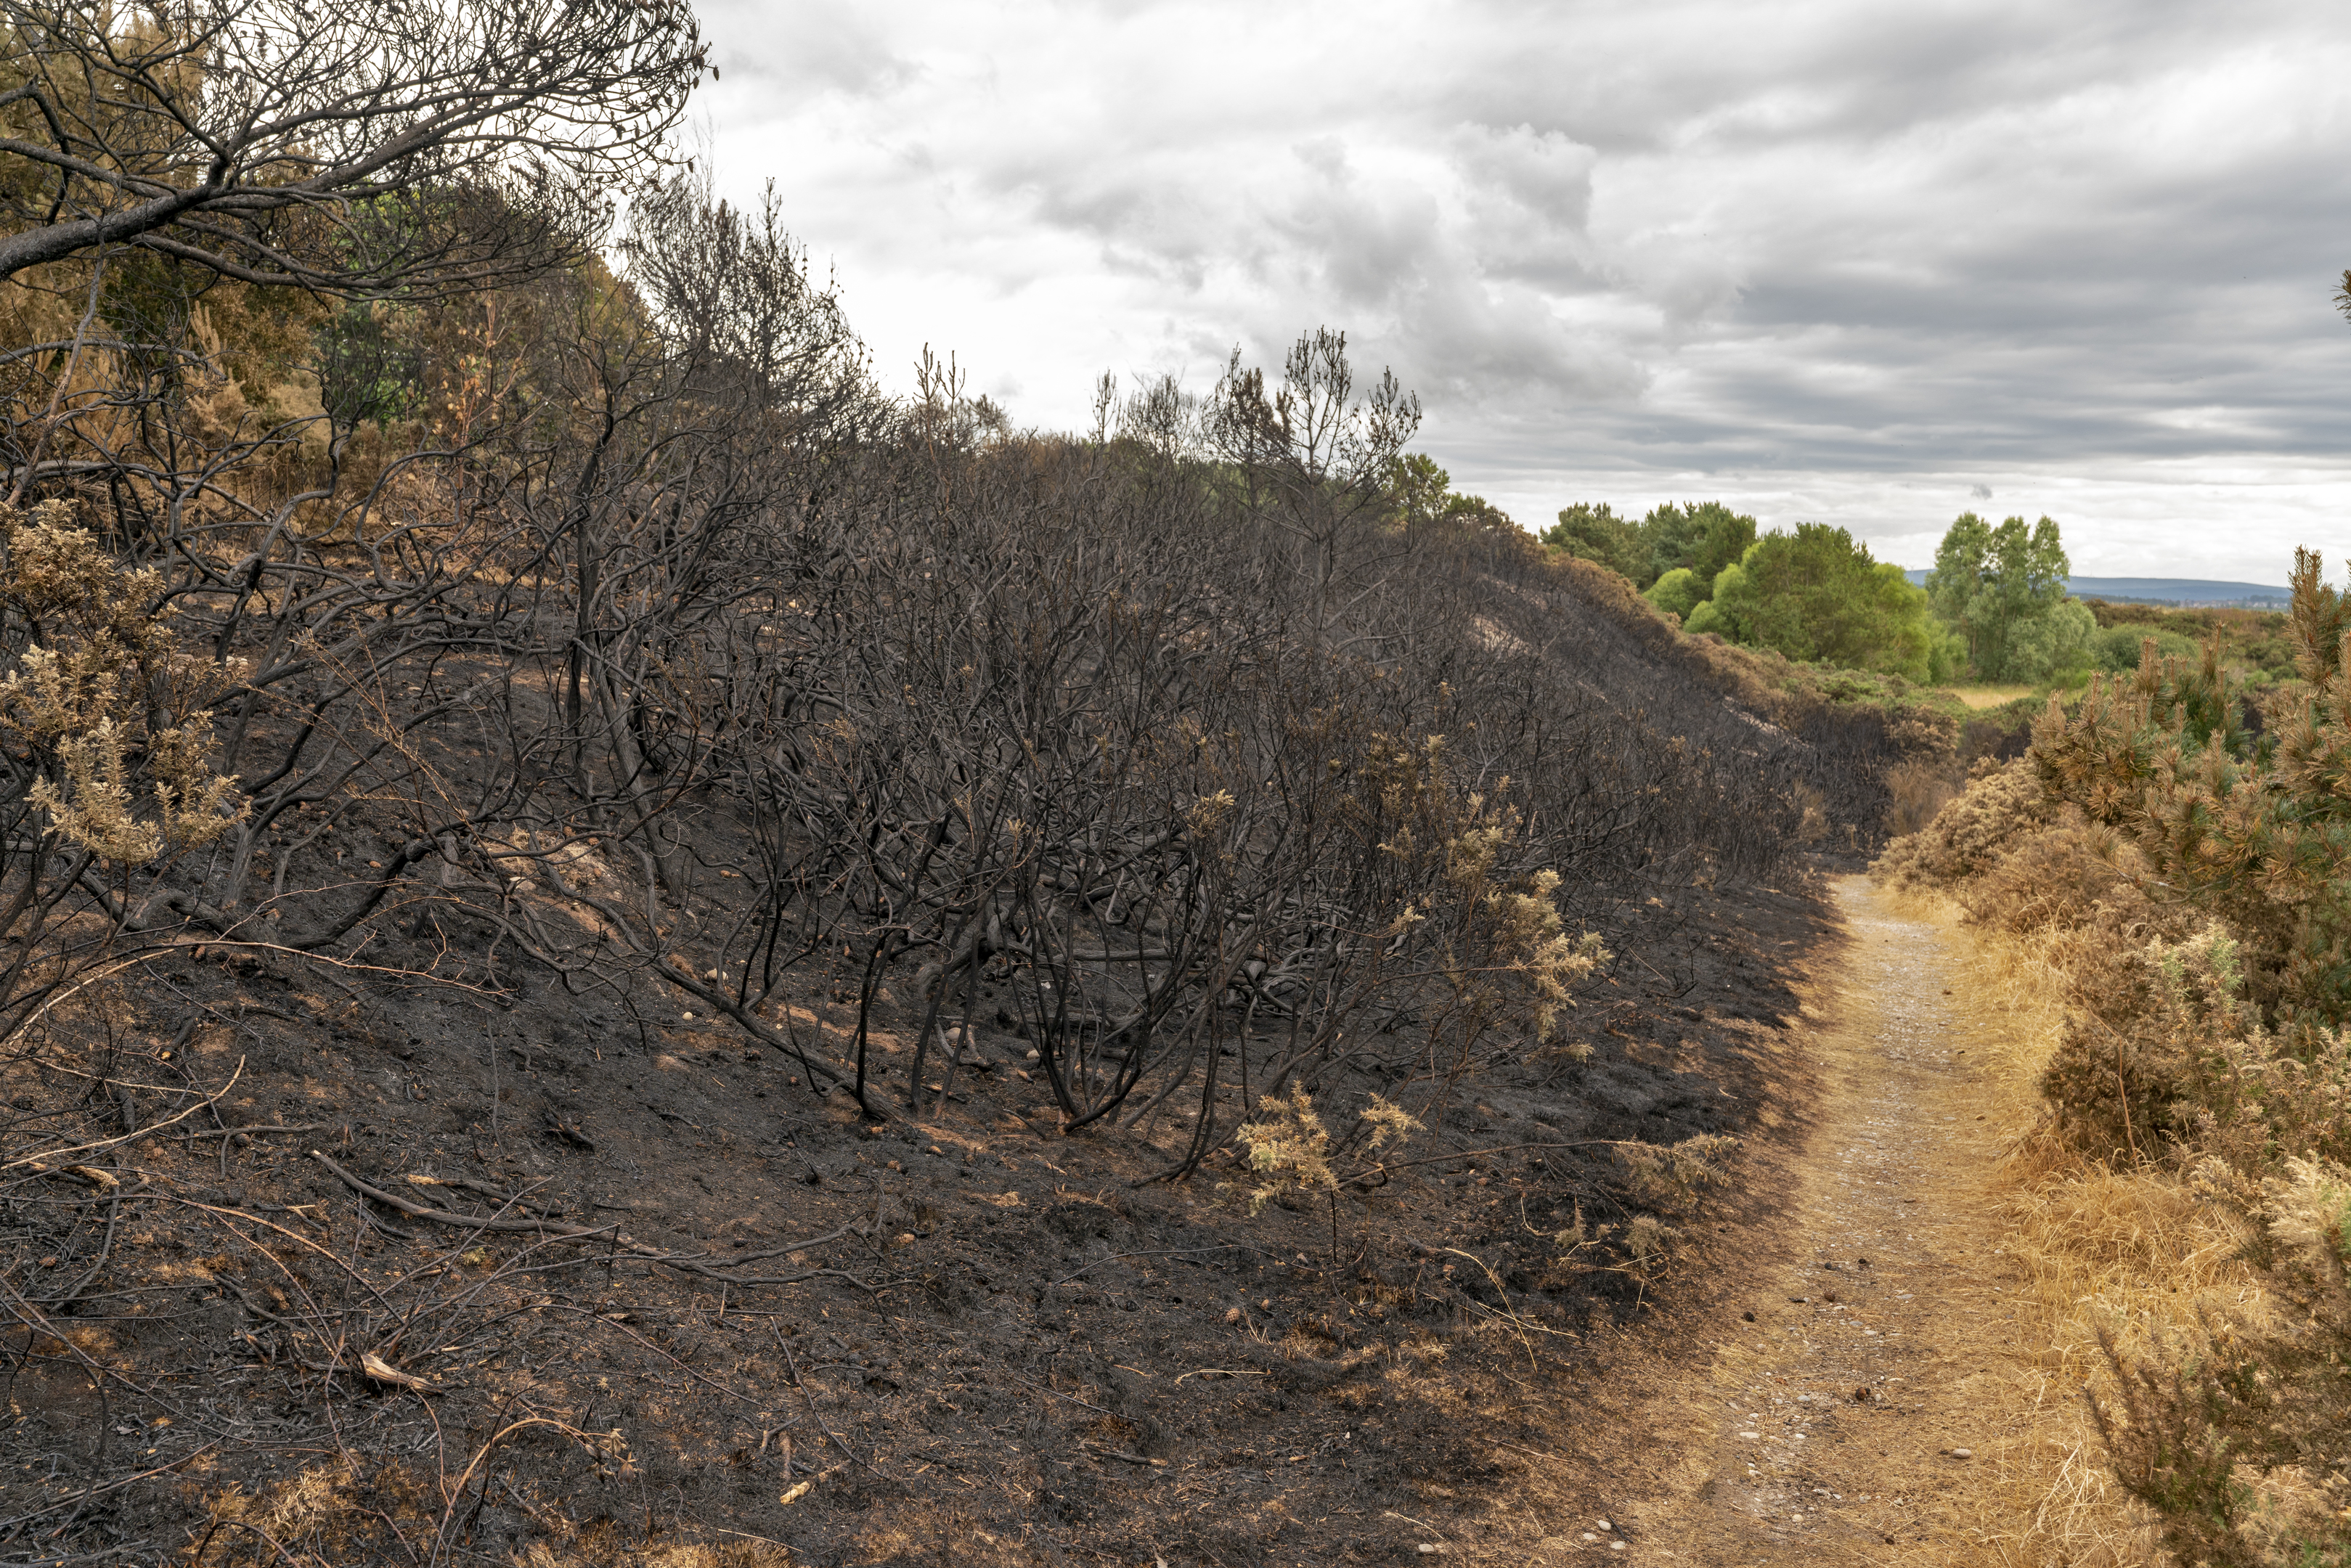 Scene of the wilful fire-raising incident at the Sunbank Quarry.